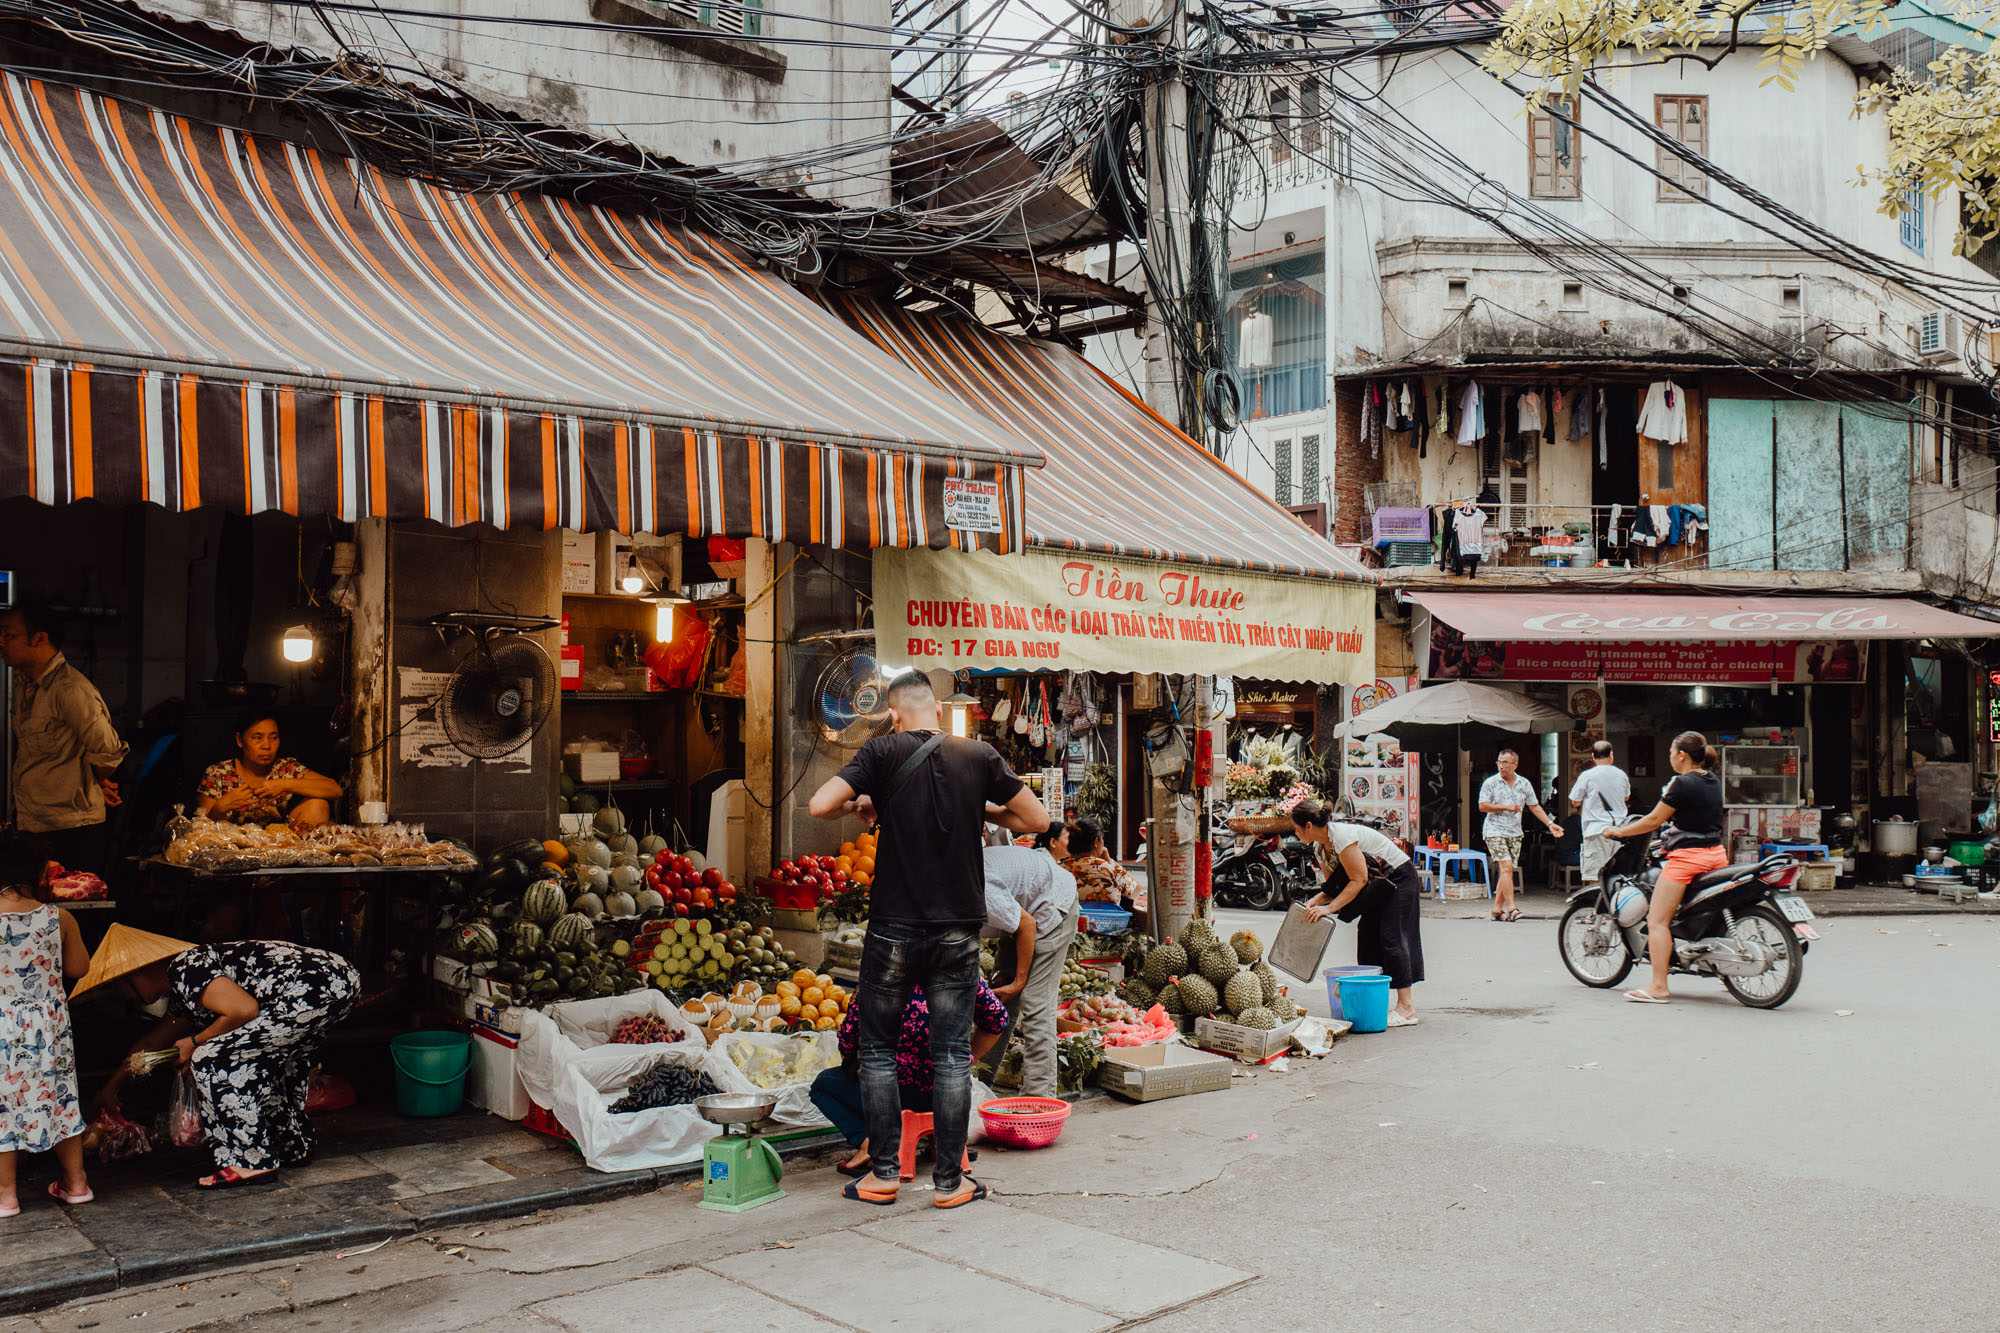 Streets and fruit shops in Hanoi Vietnam